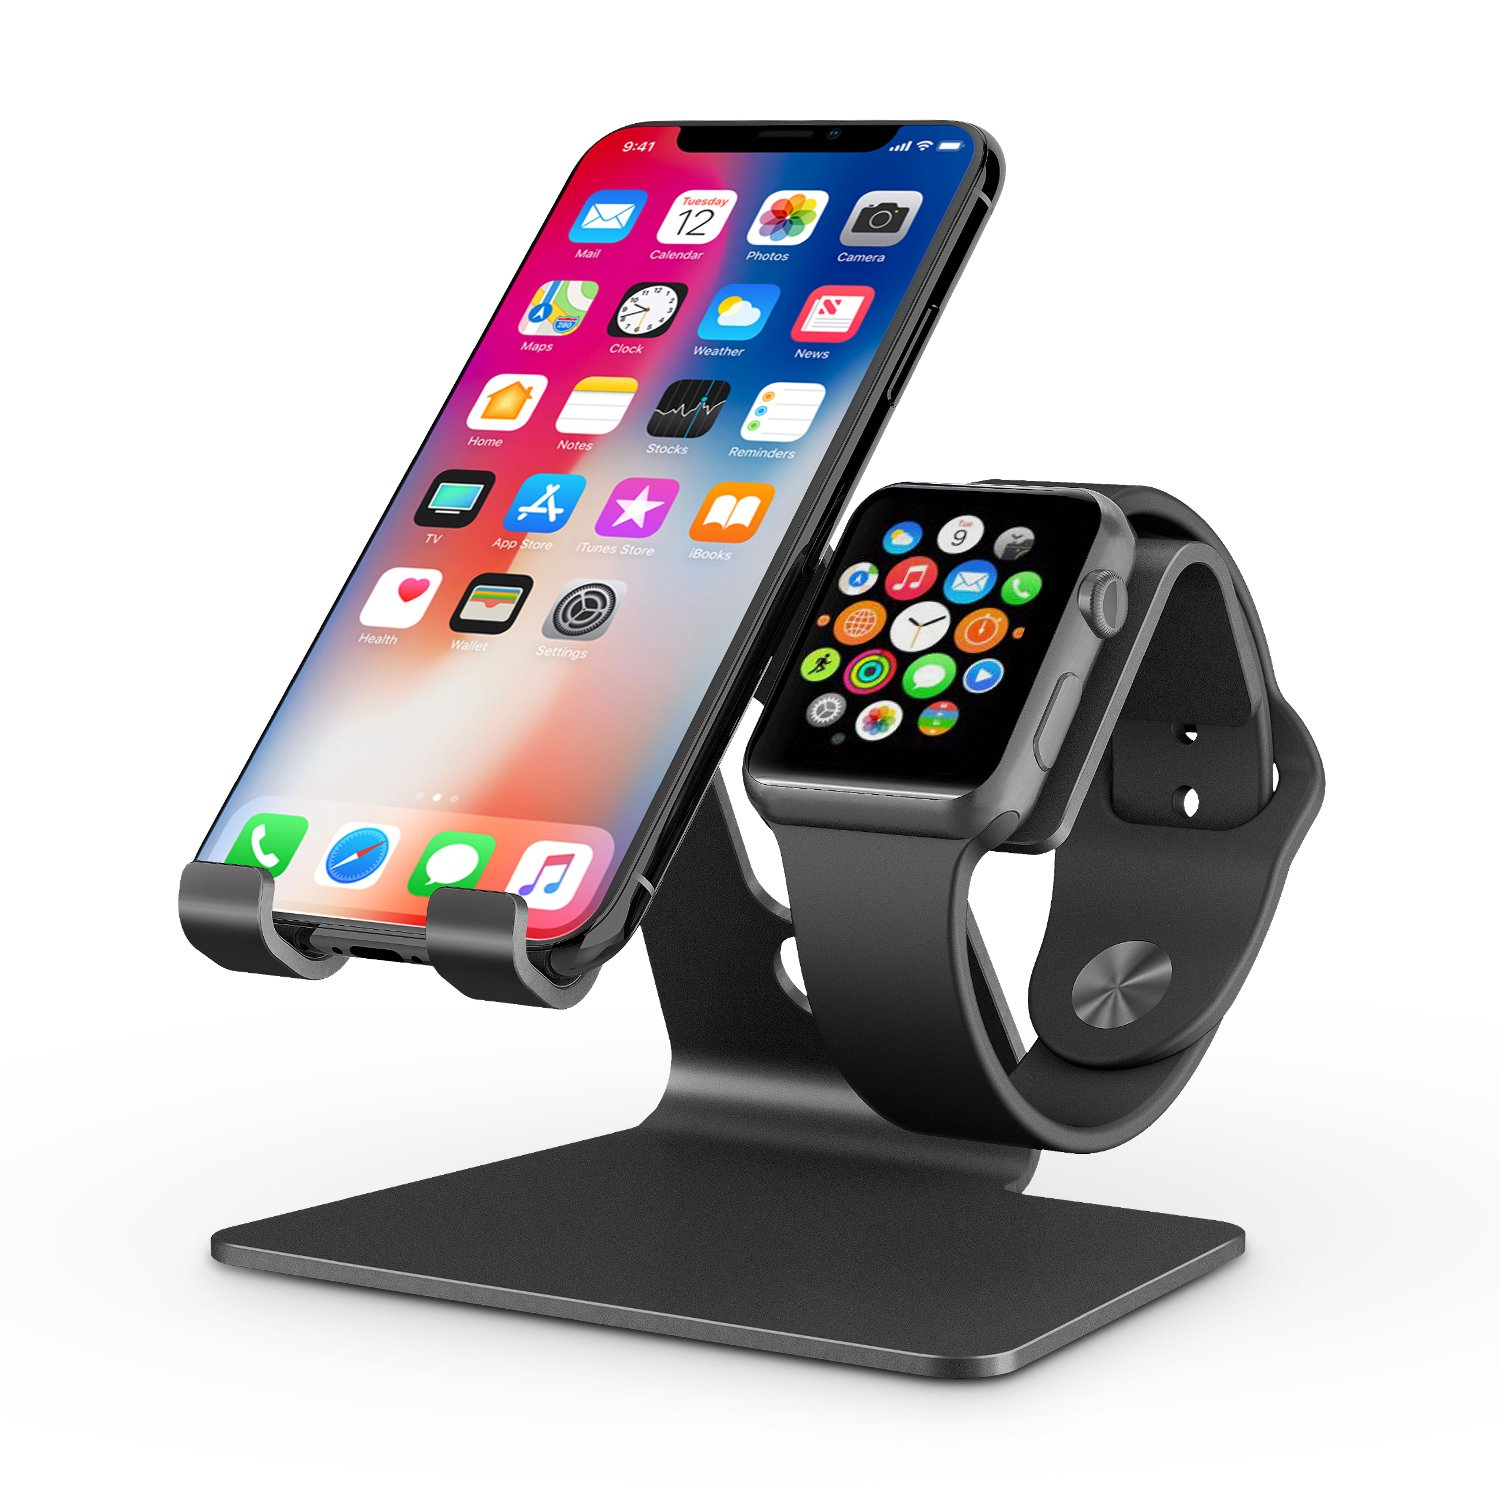 Apple Watch Stand, OMOTON 2 in 1 Universal Desktop Stand Holder for iPhone and Apple Watch (Both 38mm/40mm/42mm/44mm) (Black) by OMOTON